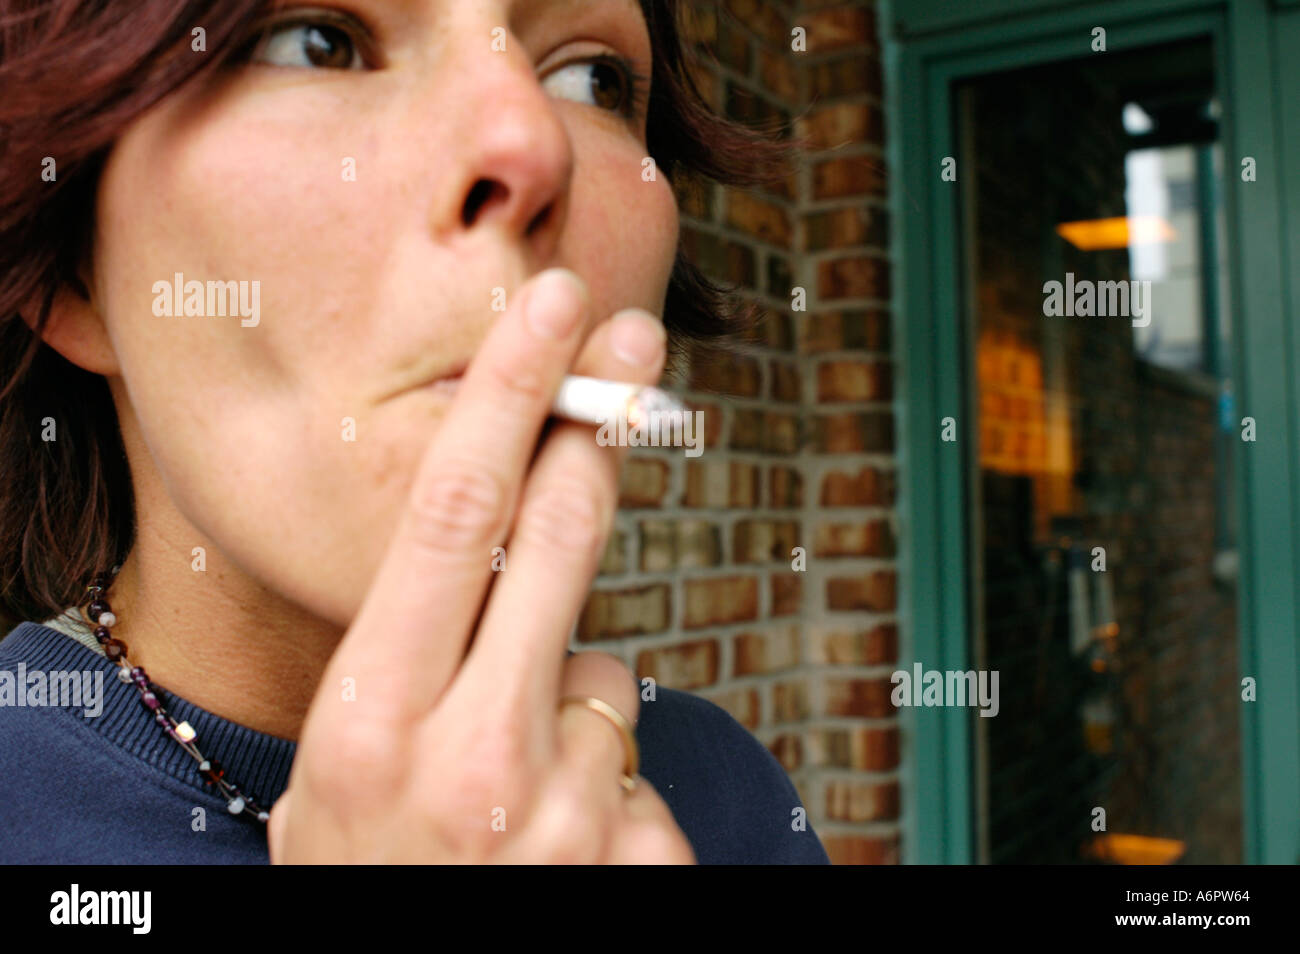 Young woman 30 with dark hair smoking on a cigarette - Stock Image